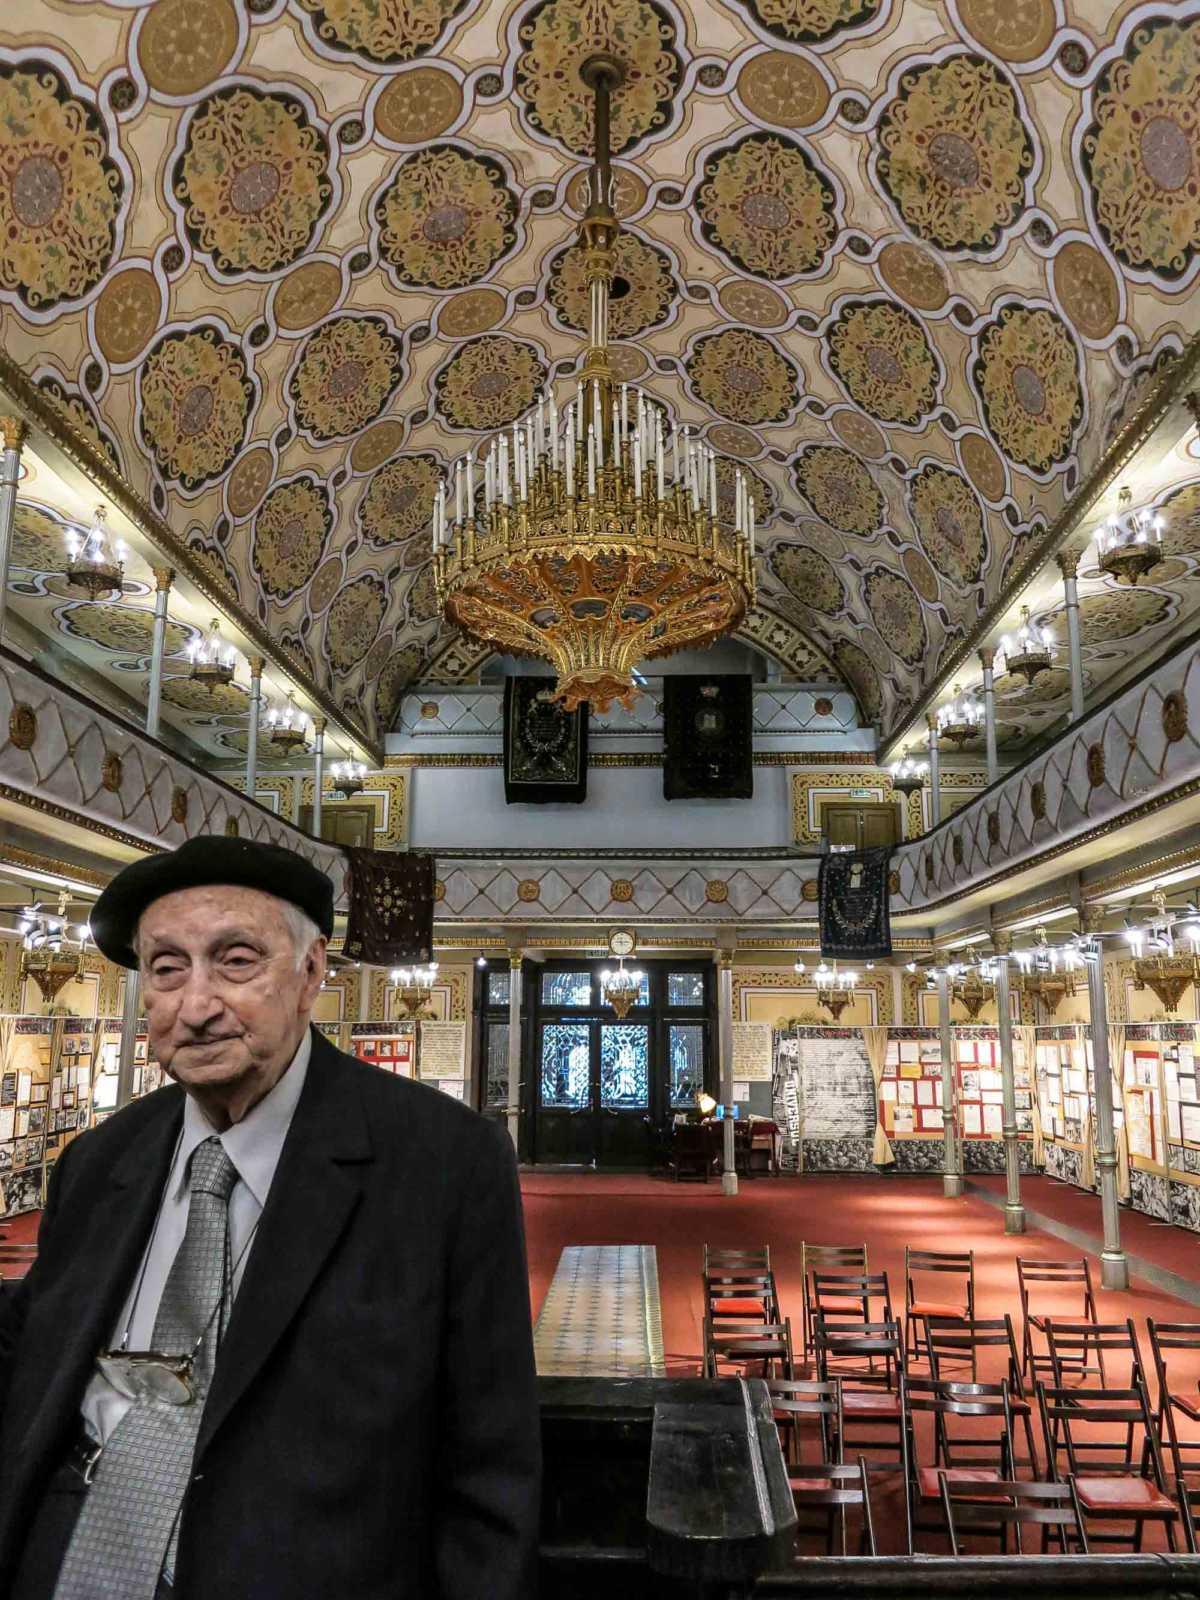 This gentleman introduced us to the displays along the walls of the Grand Synagogue of Bucharest, one of two still standing in the old city.